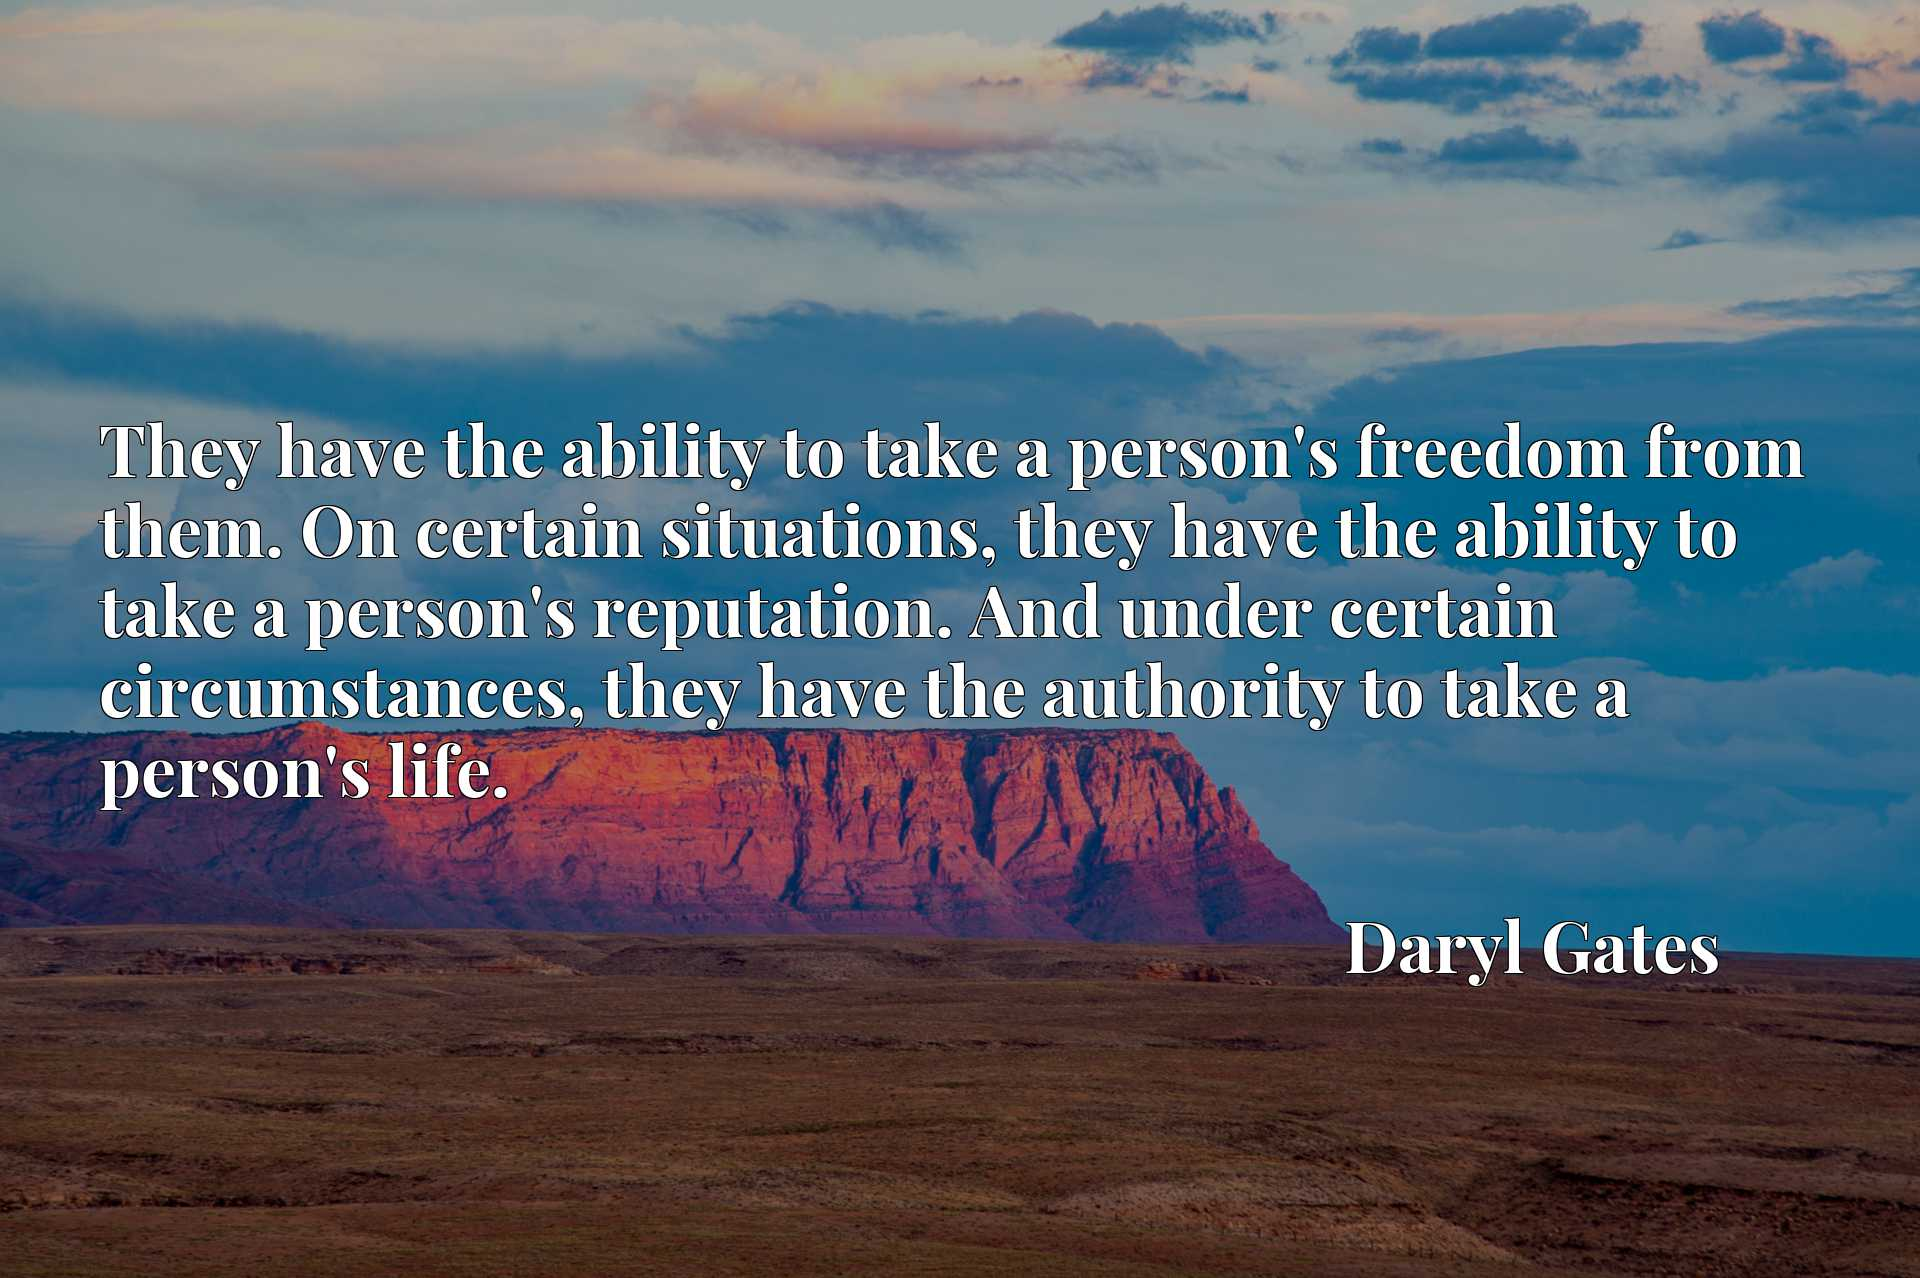 They have the ability to take a person's freedom from them. On certain situations, they have the ability to take a person's reputation. And under certain circumstances, they have the authority to take a person's life.